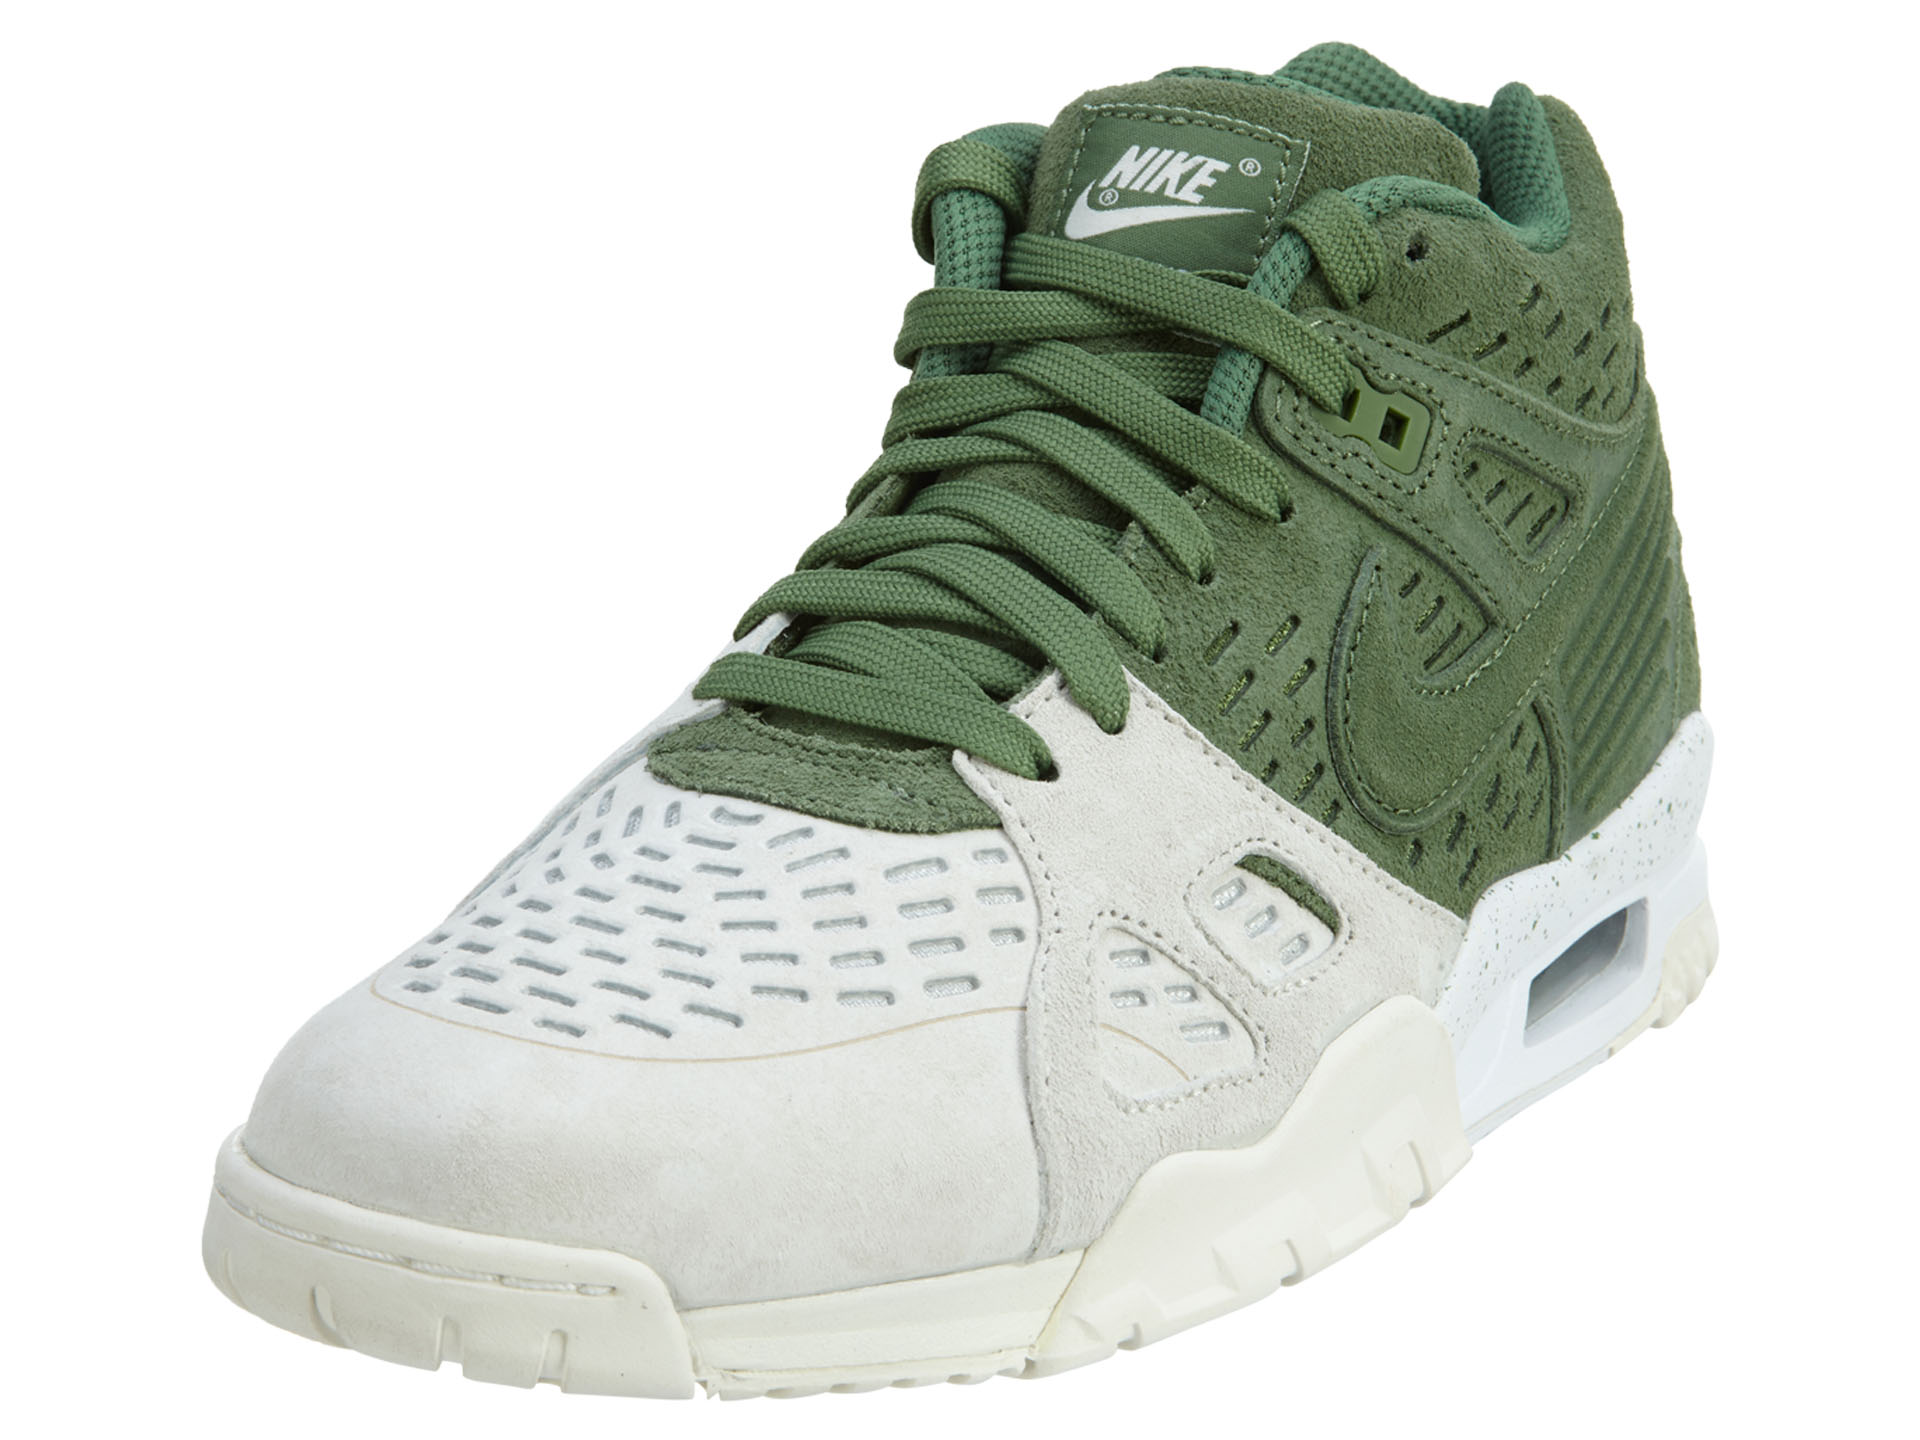 Nike Air Trainer 3 Le Mens Style : 815758